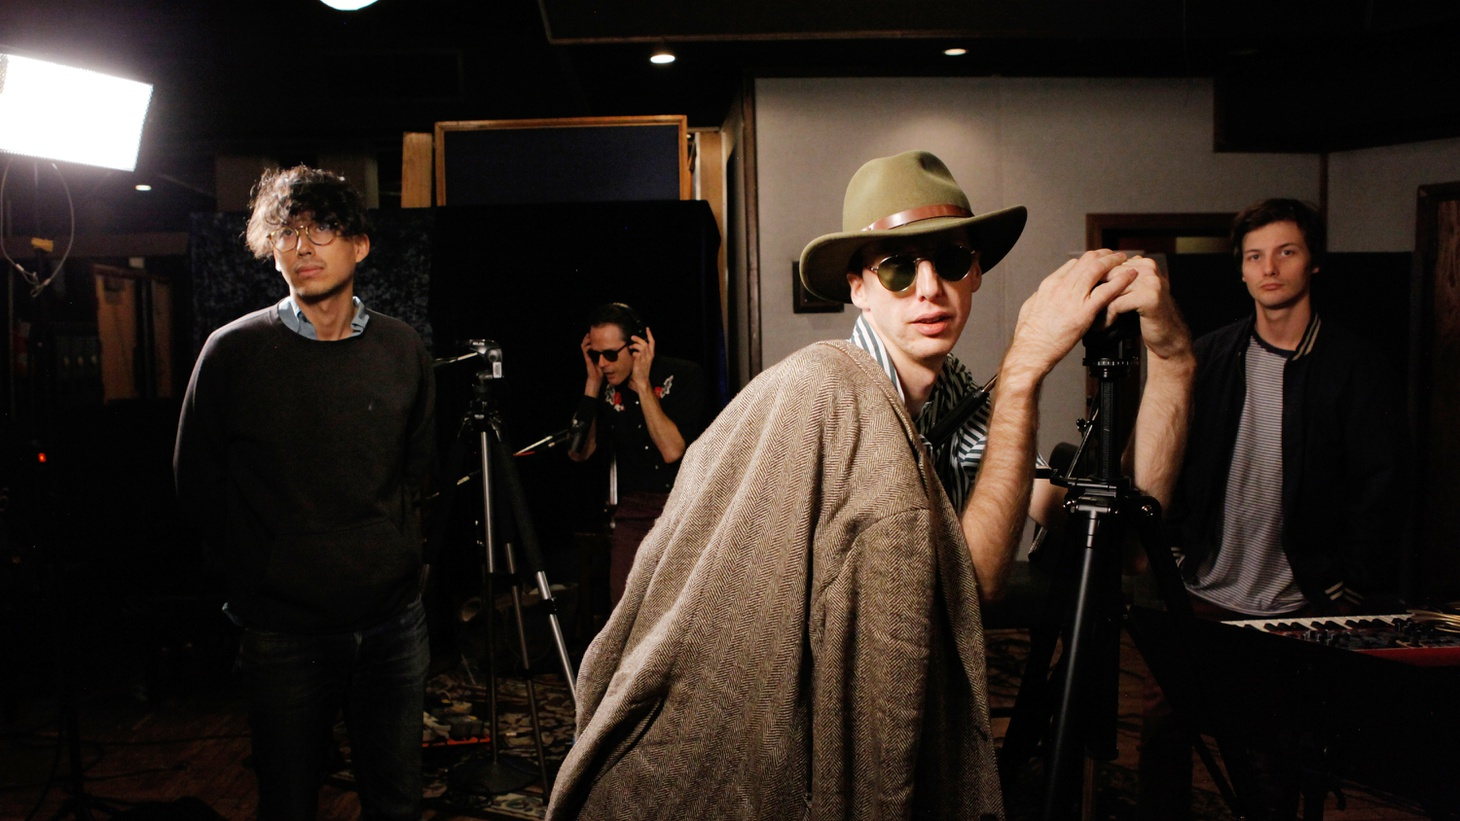 Deerhunter, the Atlanta-based band led by front-man Bradford Cox, reinvents itself once again on their seventh album Fading Frontier. Utterly captivating and unafraid to take chances, the band impresses with a fresh take on songs new and old.